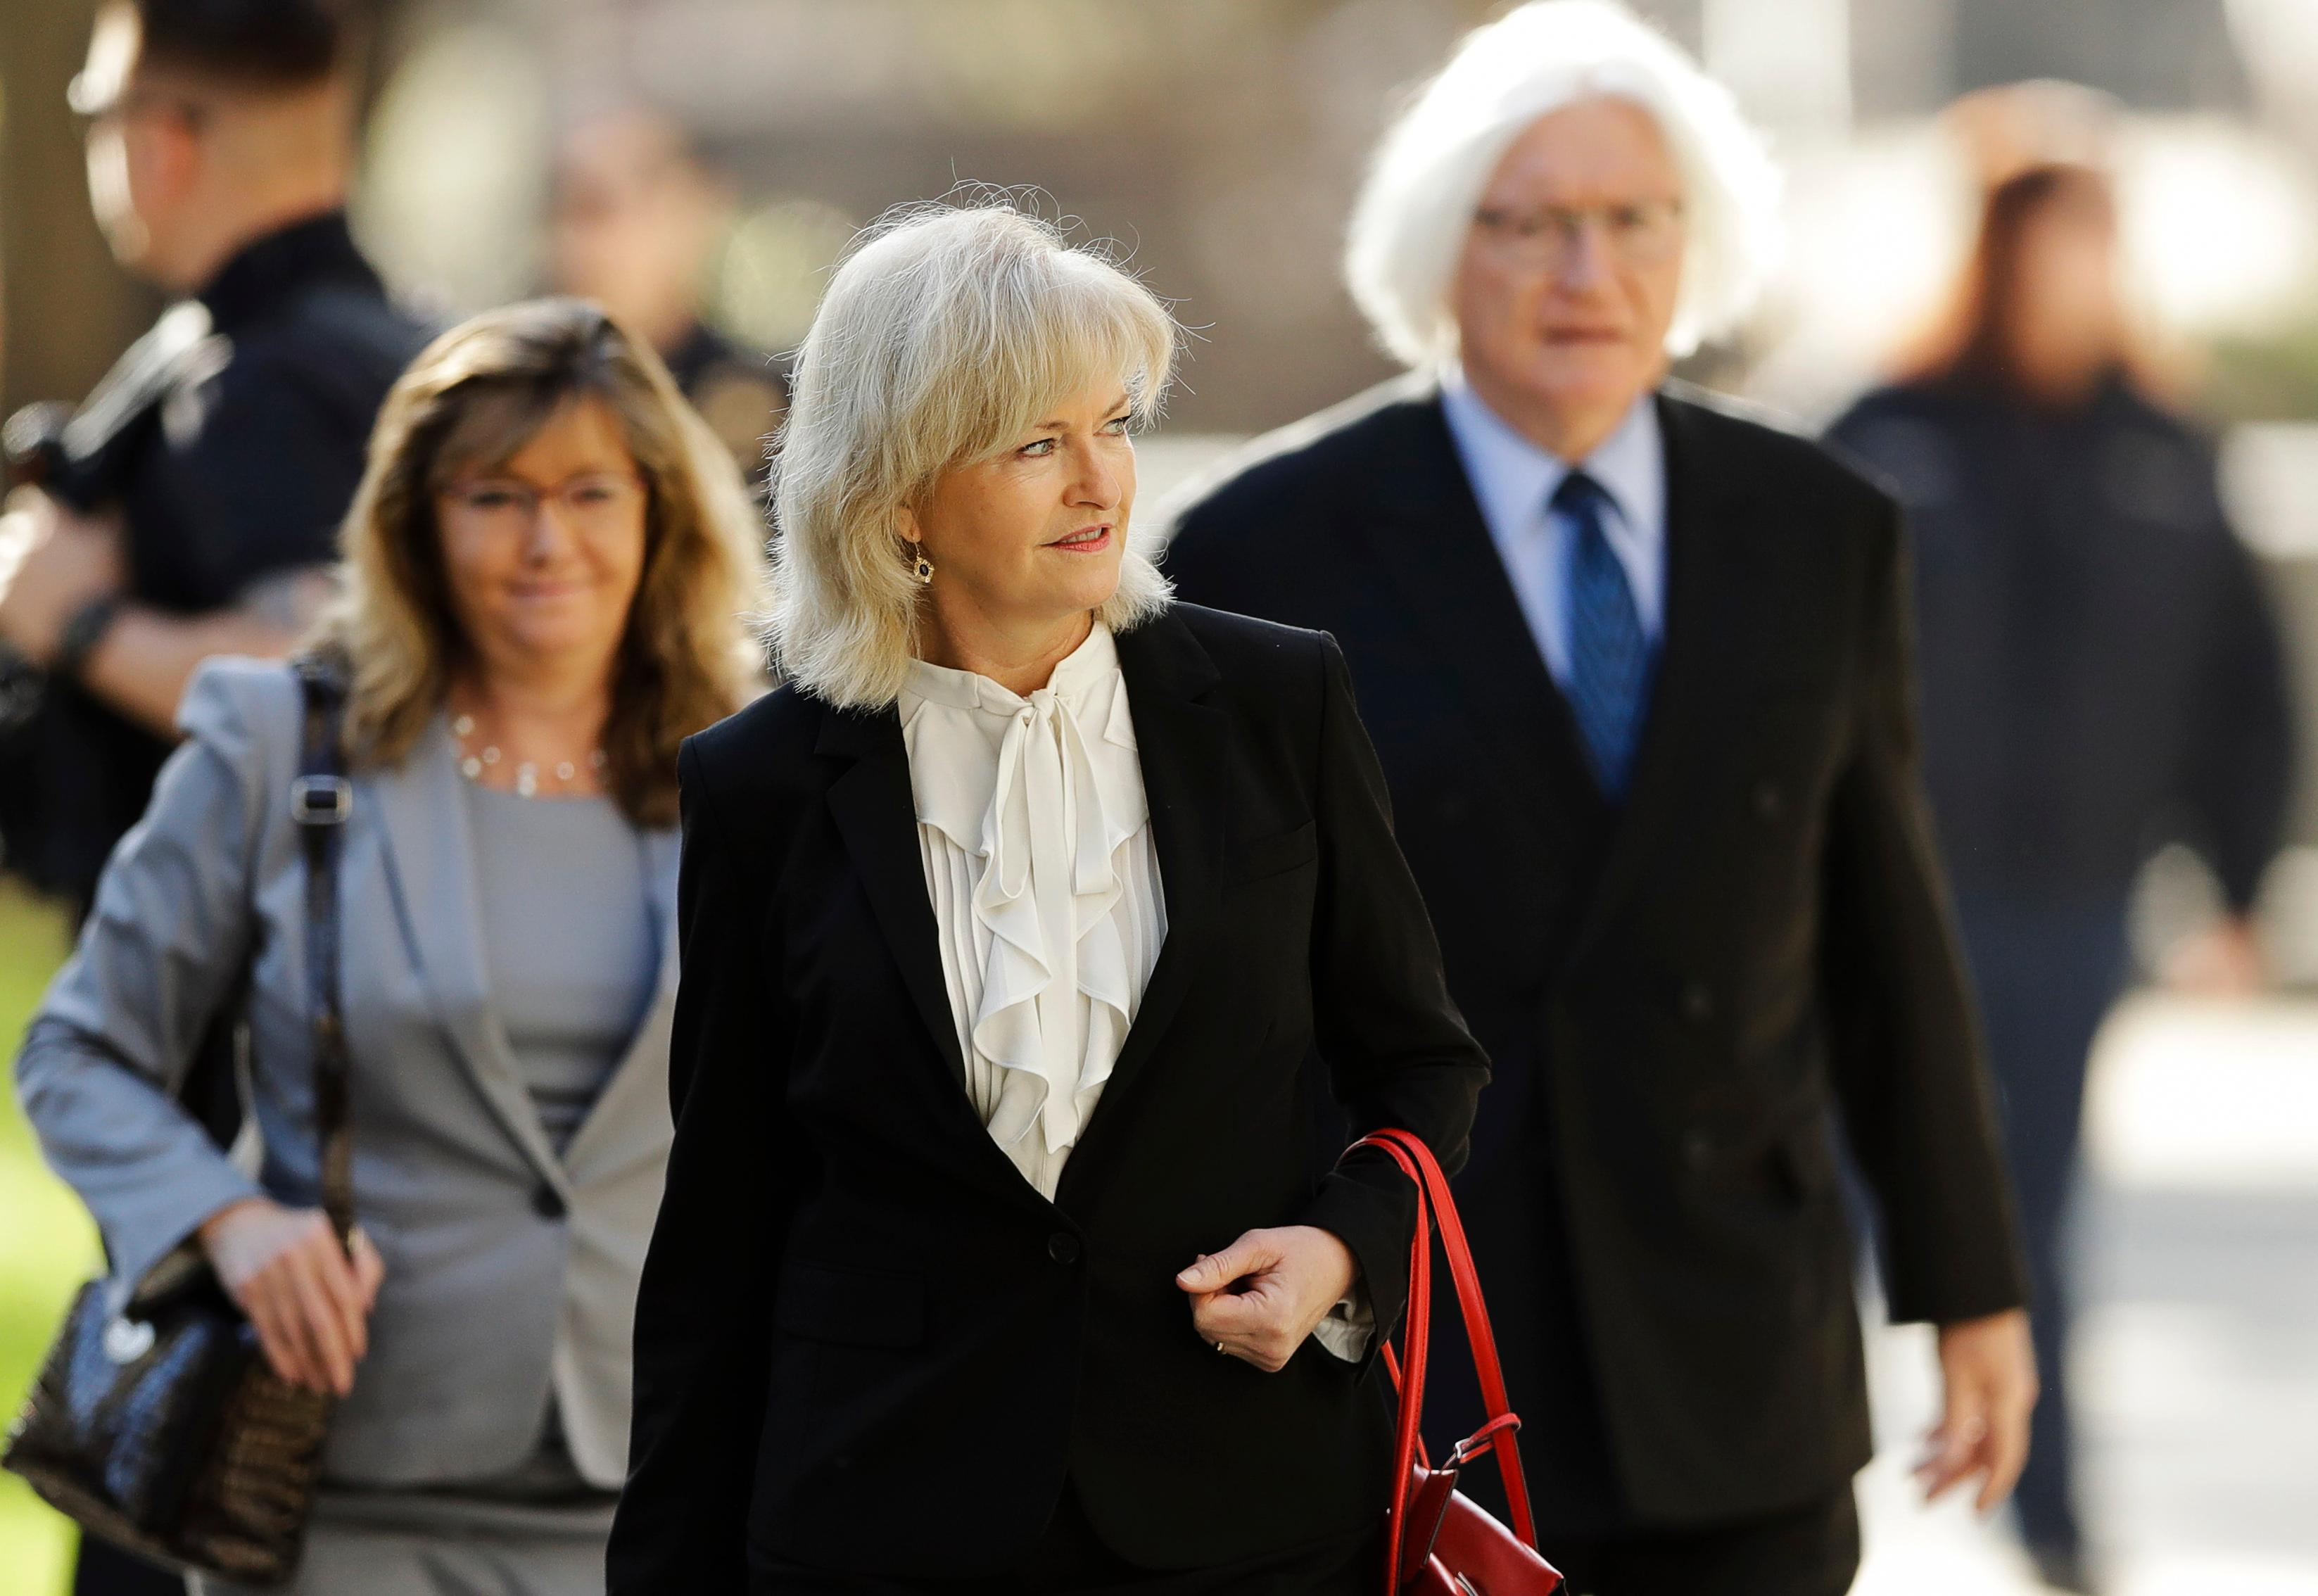 Attorney Kathleen Bliss, center, arrives for Bill Cosby's sexual assault trial, Monday, April 23, 2018, at the Montgomery County Courthouse in Norristown, Pa. (AP Photo/Matt Slocum)